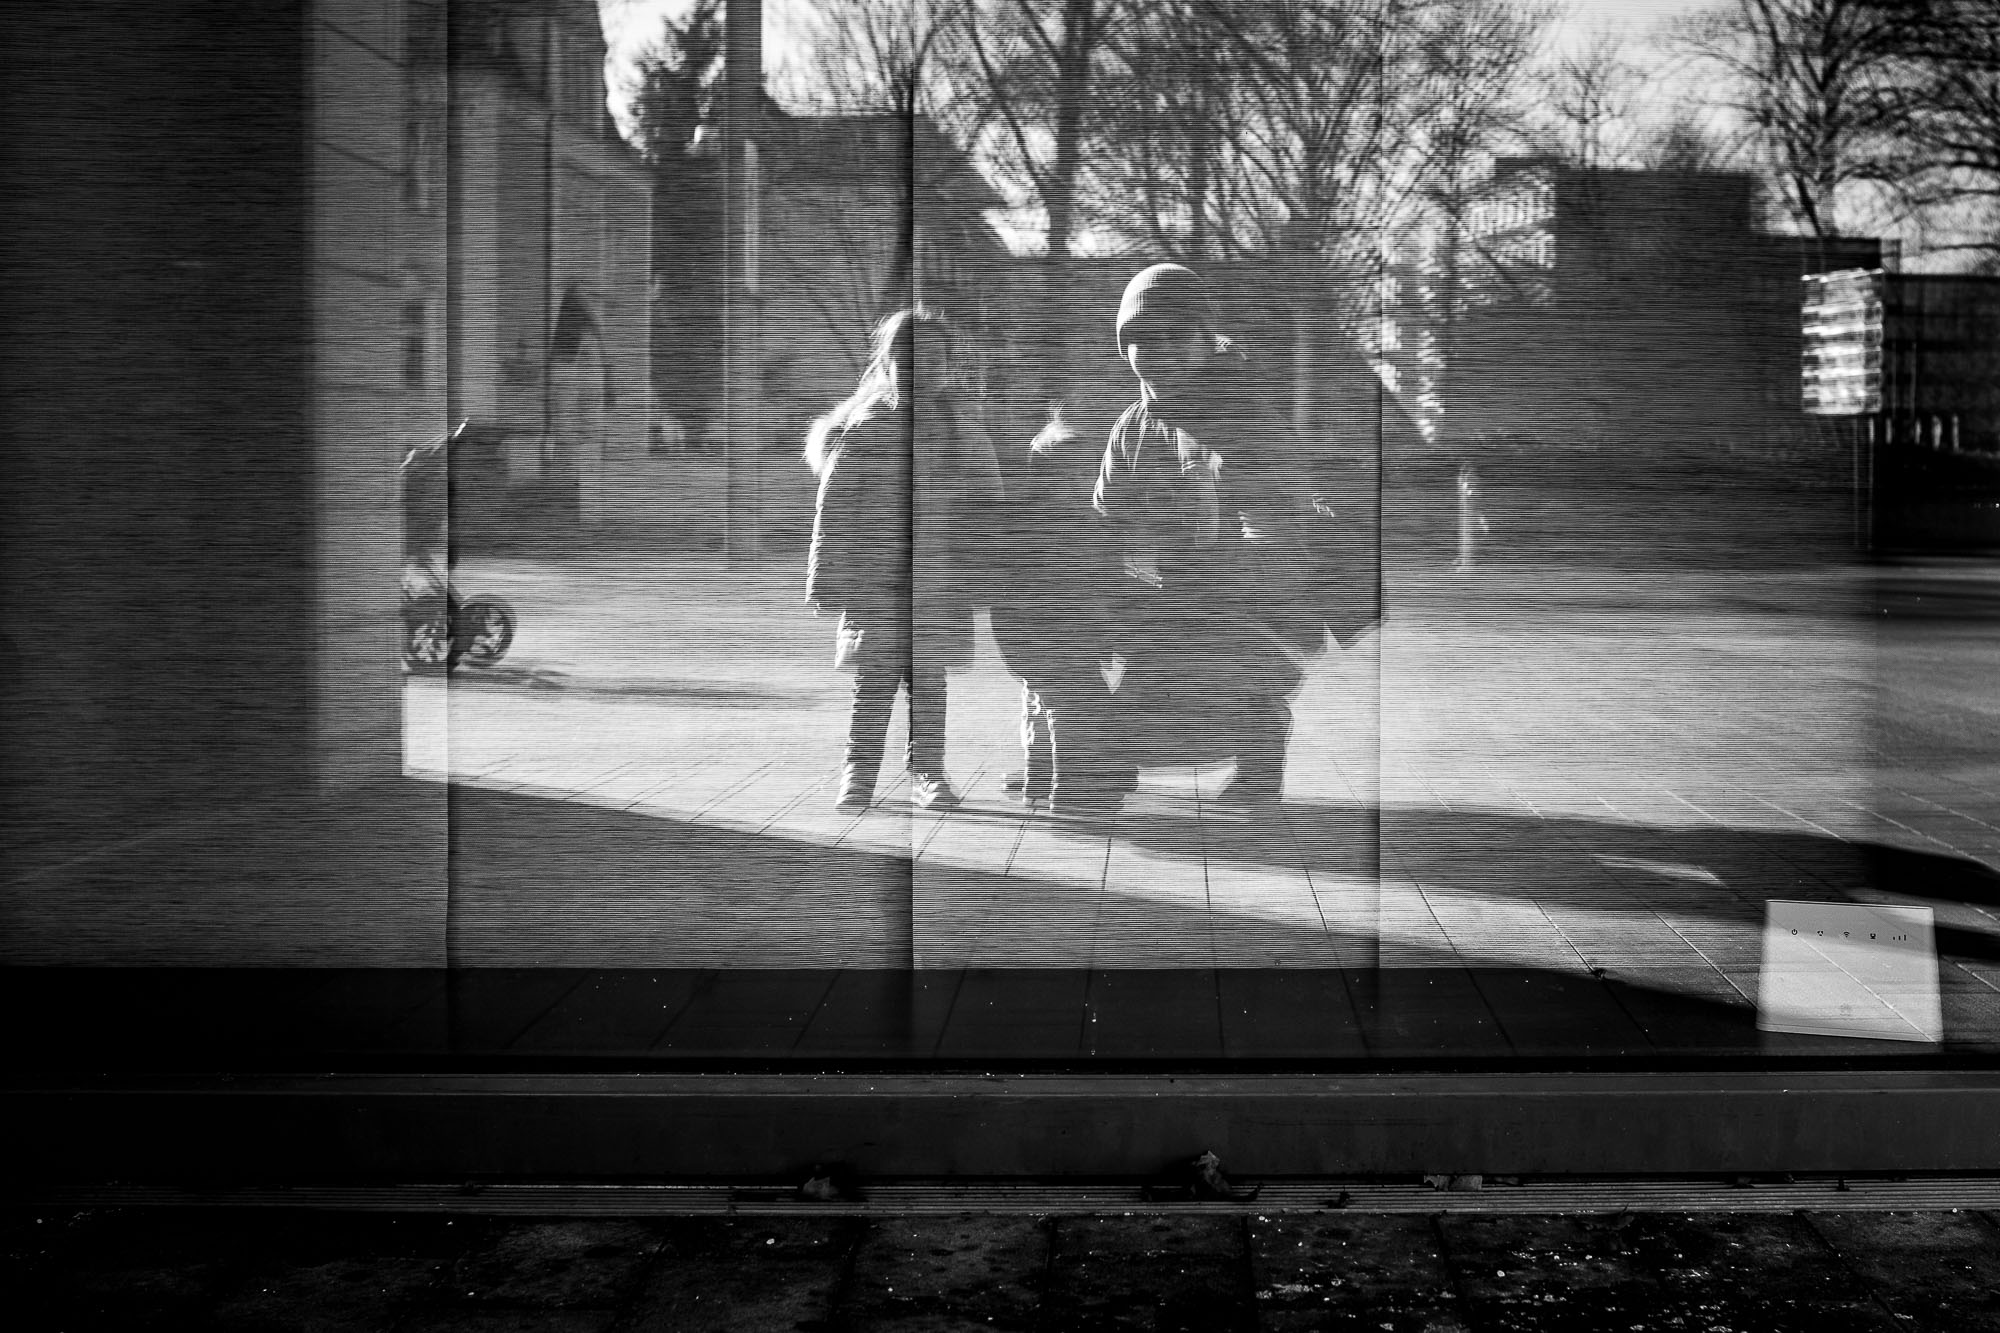 Reflection of my two girls and me in a window